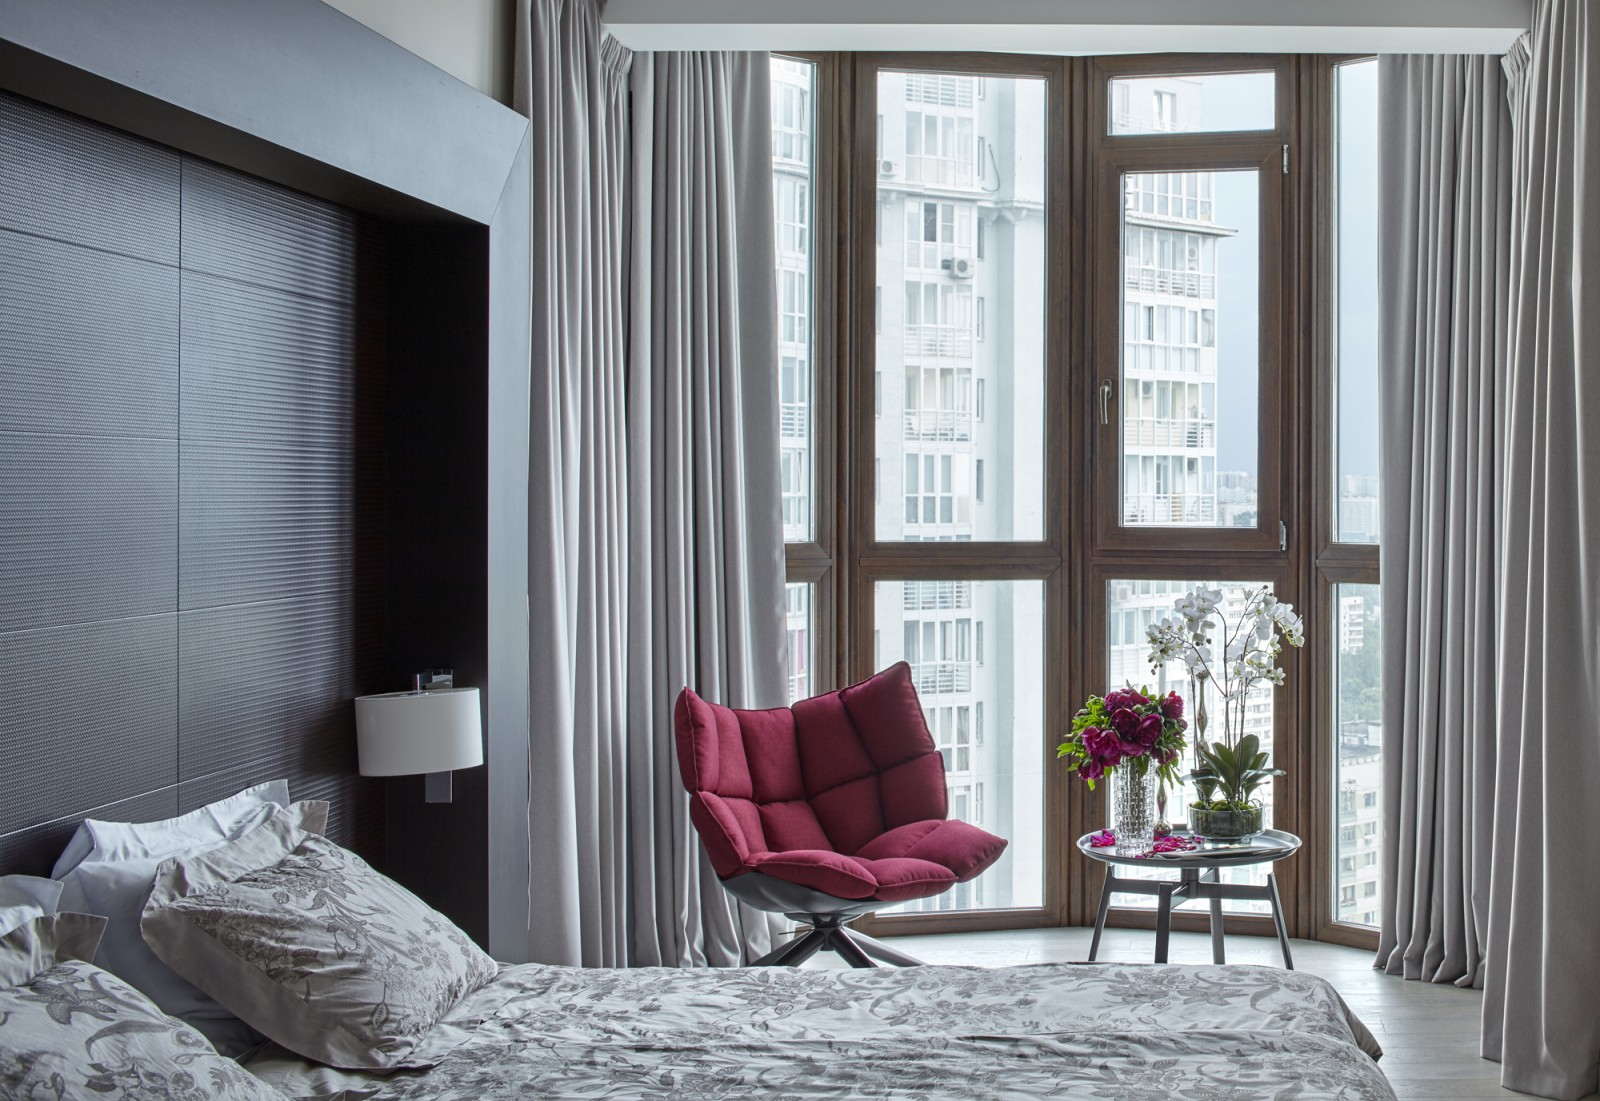 Bedroom with large windows from Alexandra Fedorova